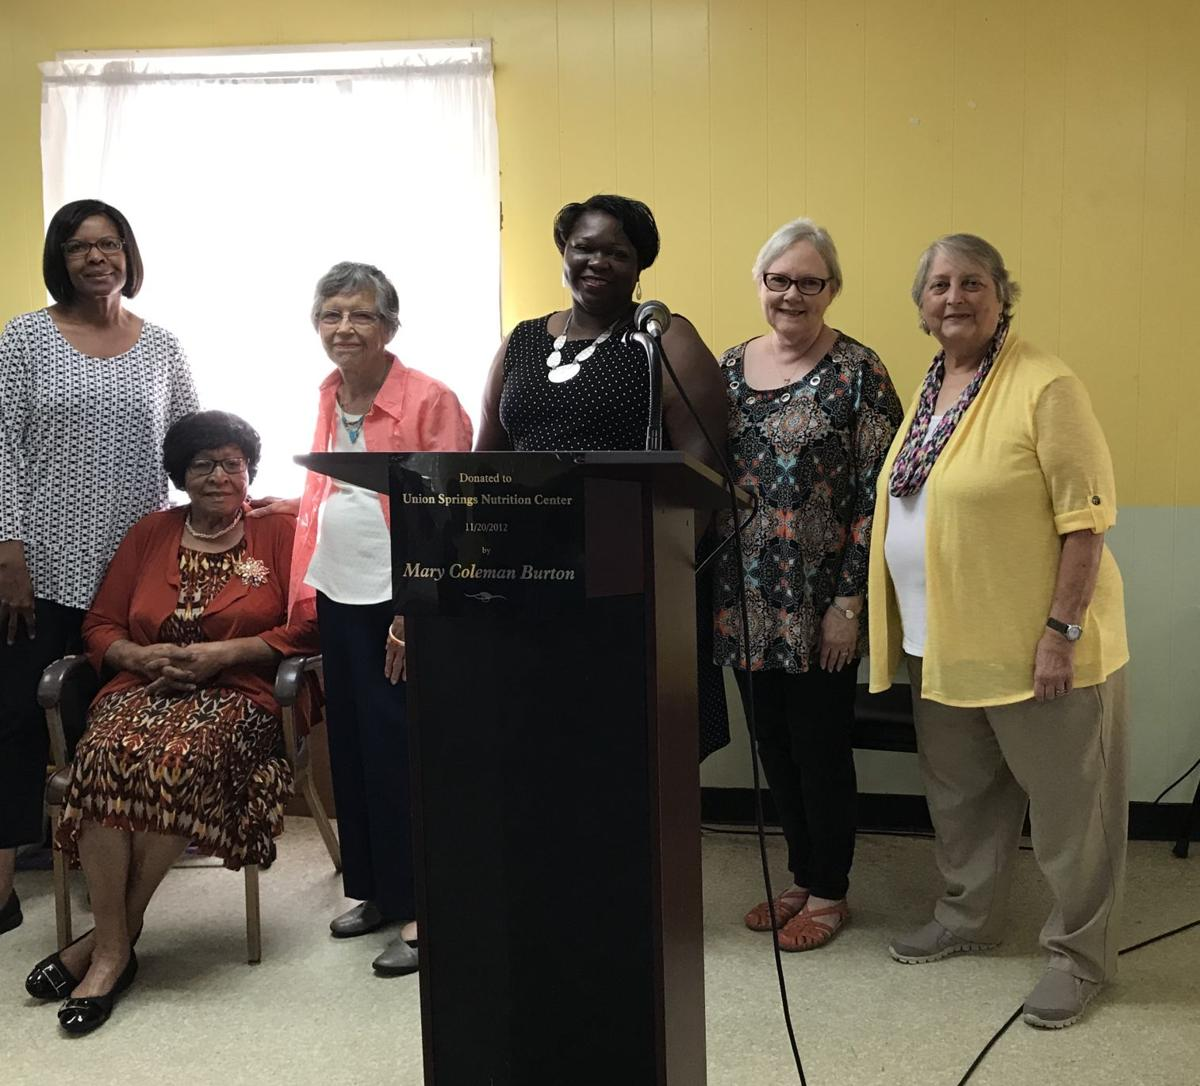 Staff of South Central Alabama Development Commission Area Agency on Aging. Left to right: Sharon Redd, Leola Cobb, Maude Garrick, Mary Wordsworth, Shelia Rice, and Karen Crawford.